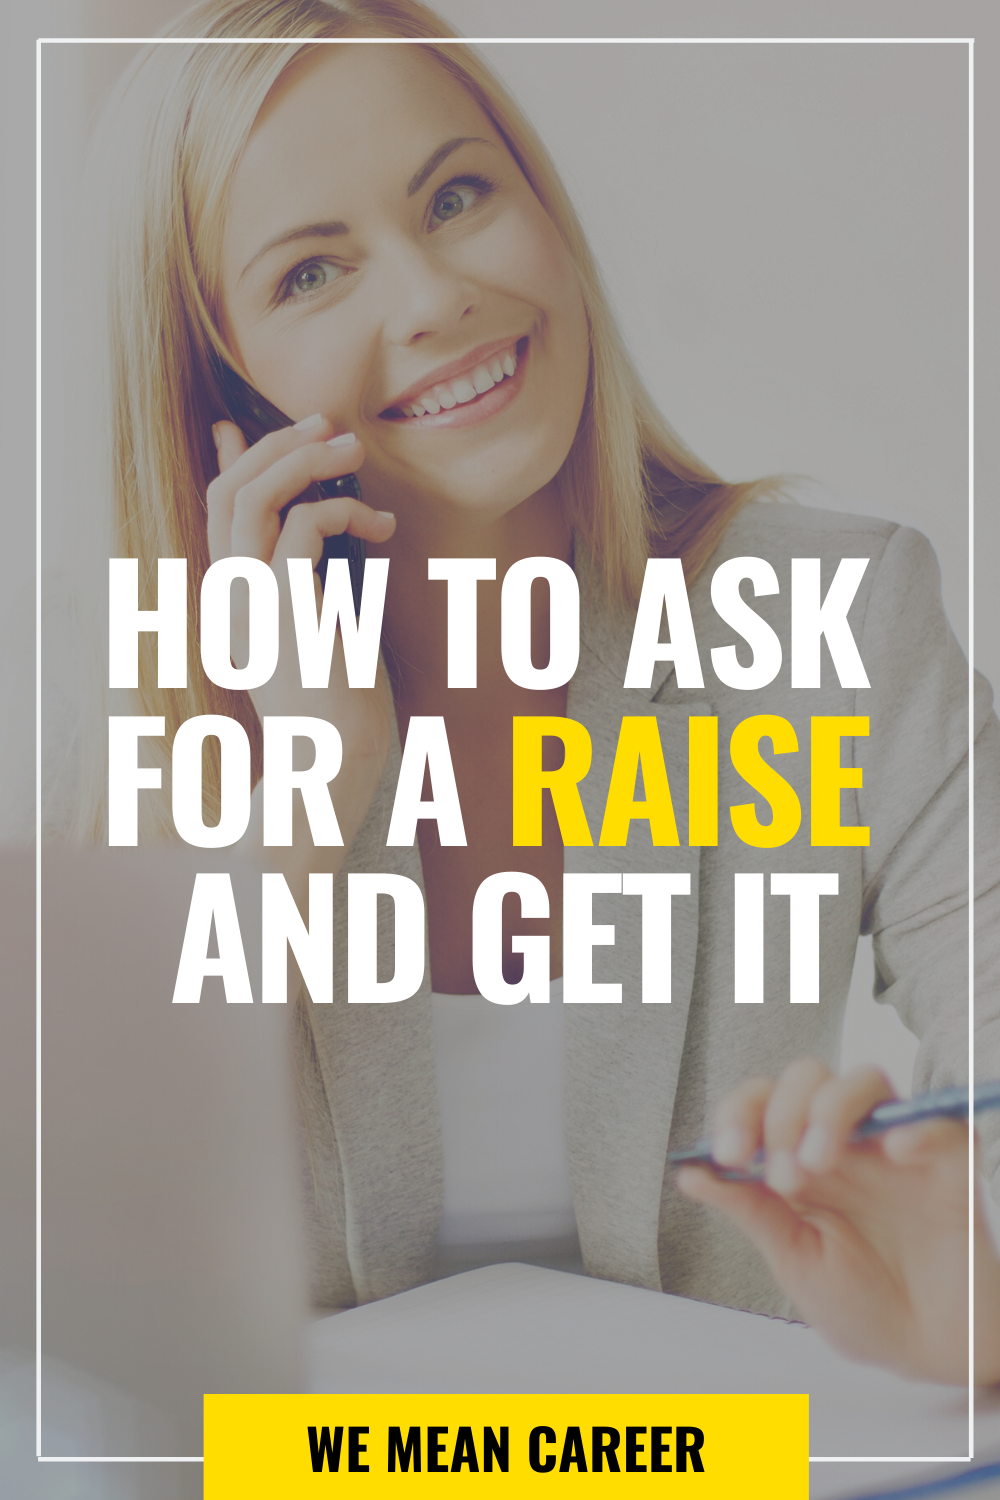 52dc52d4fec8b70d27241b2c09bd126f - How To Ask Your Boss If You Are Getting Fired